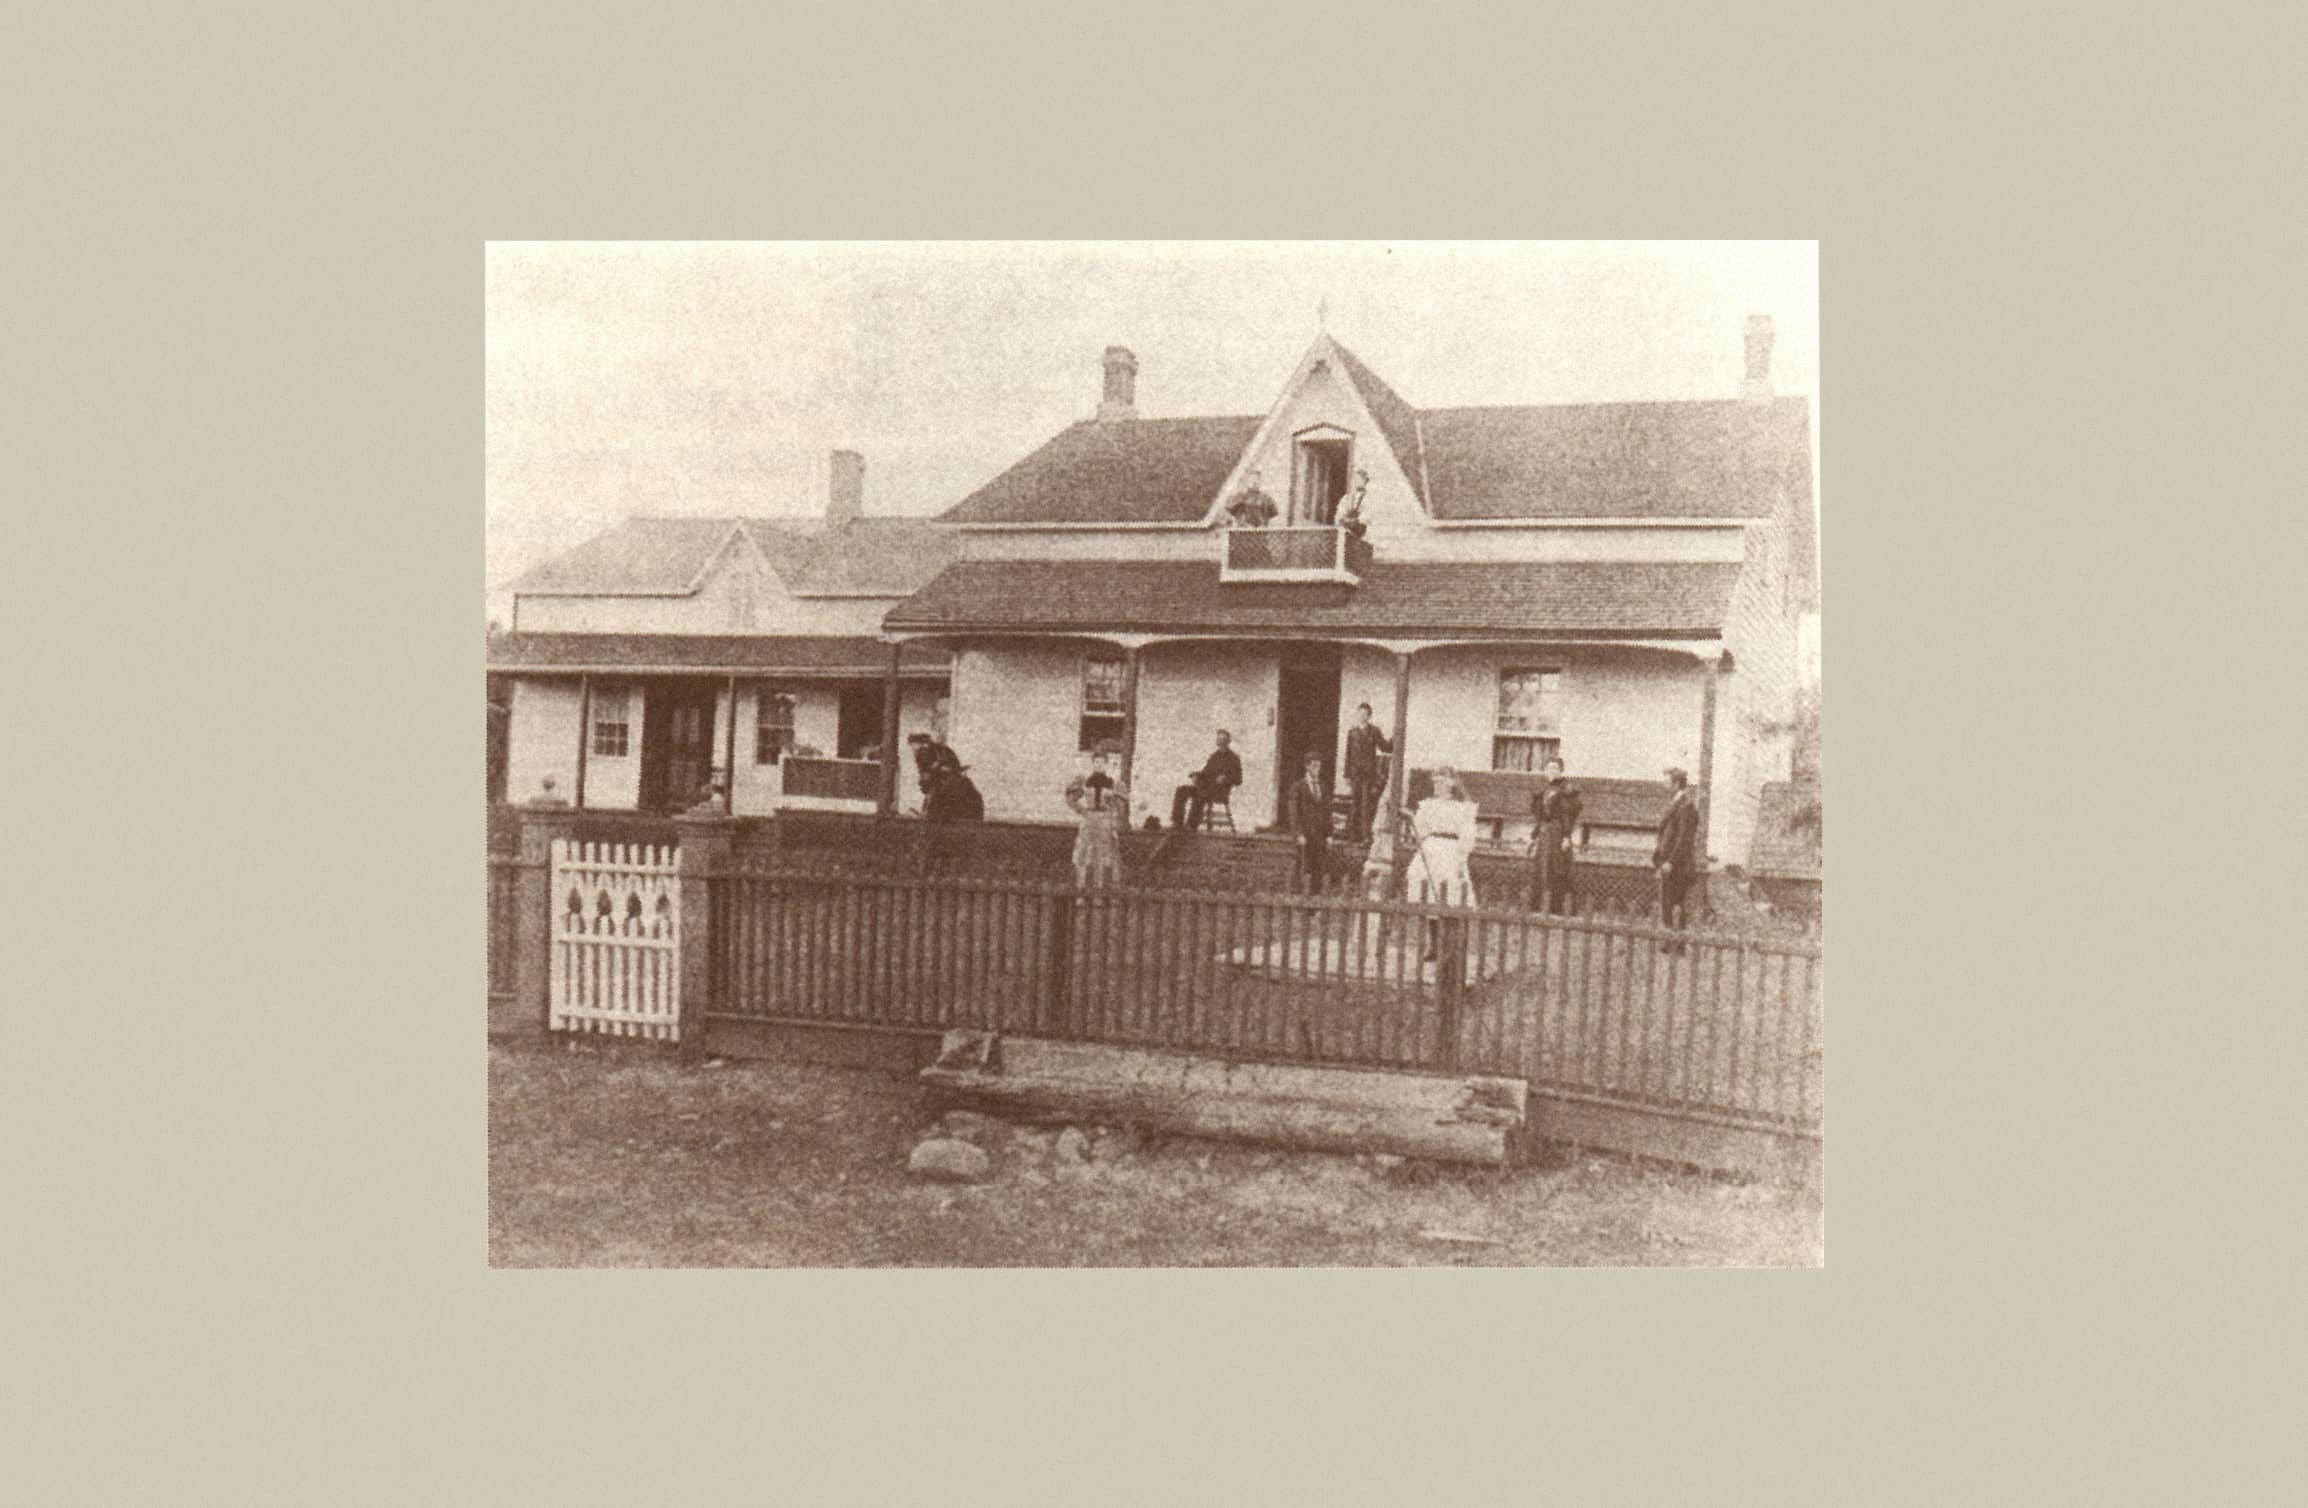 An old house with family sitting on the front porch, balcony, and lawn surrounded by a wrought iron fence